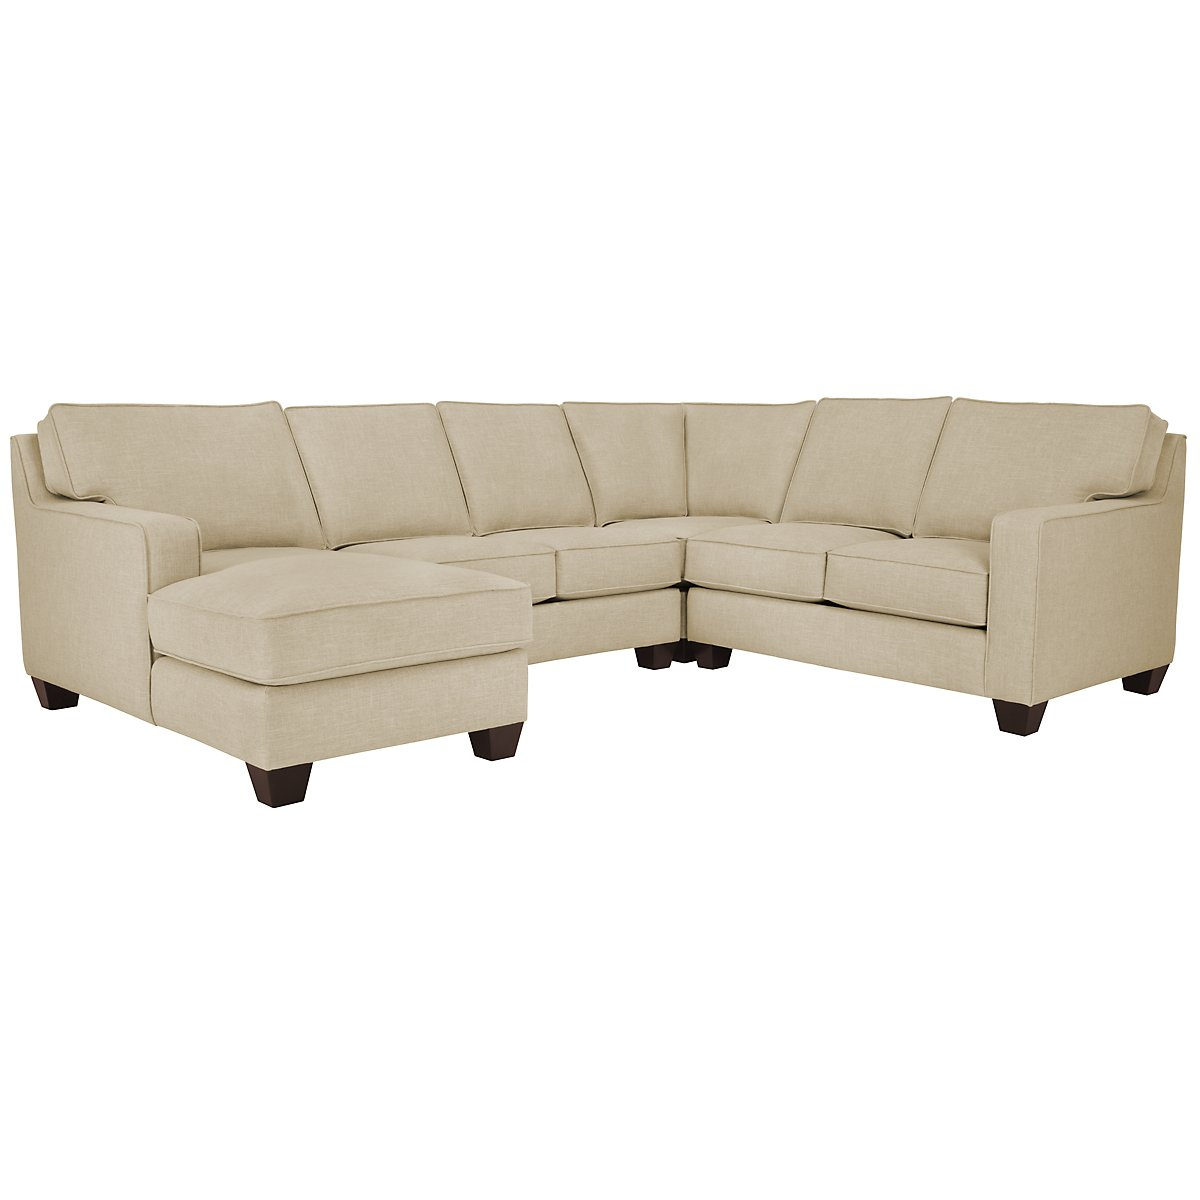 City furniture york beige fabric medium left chaise sectional for Beige sectional with chaise